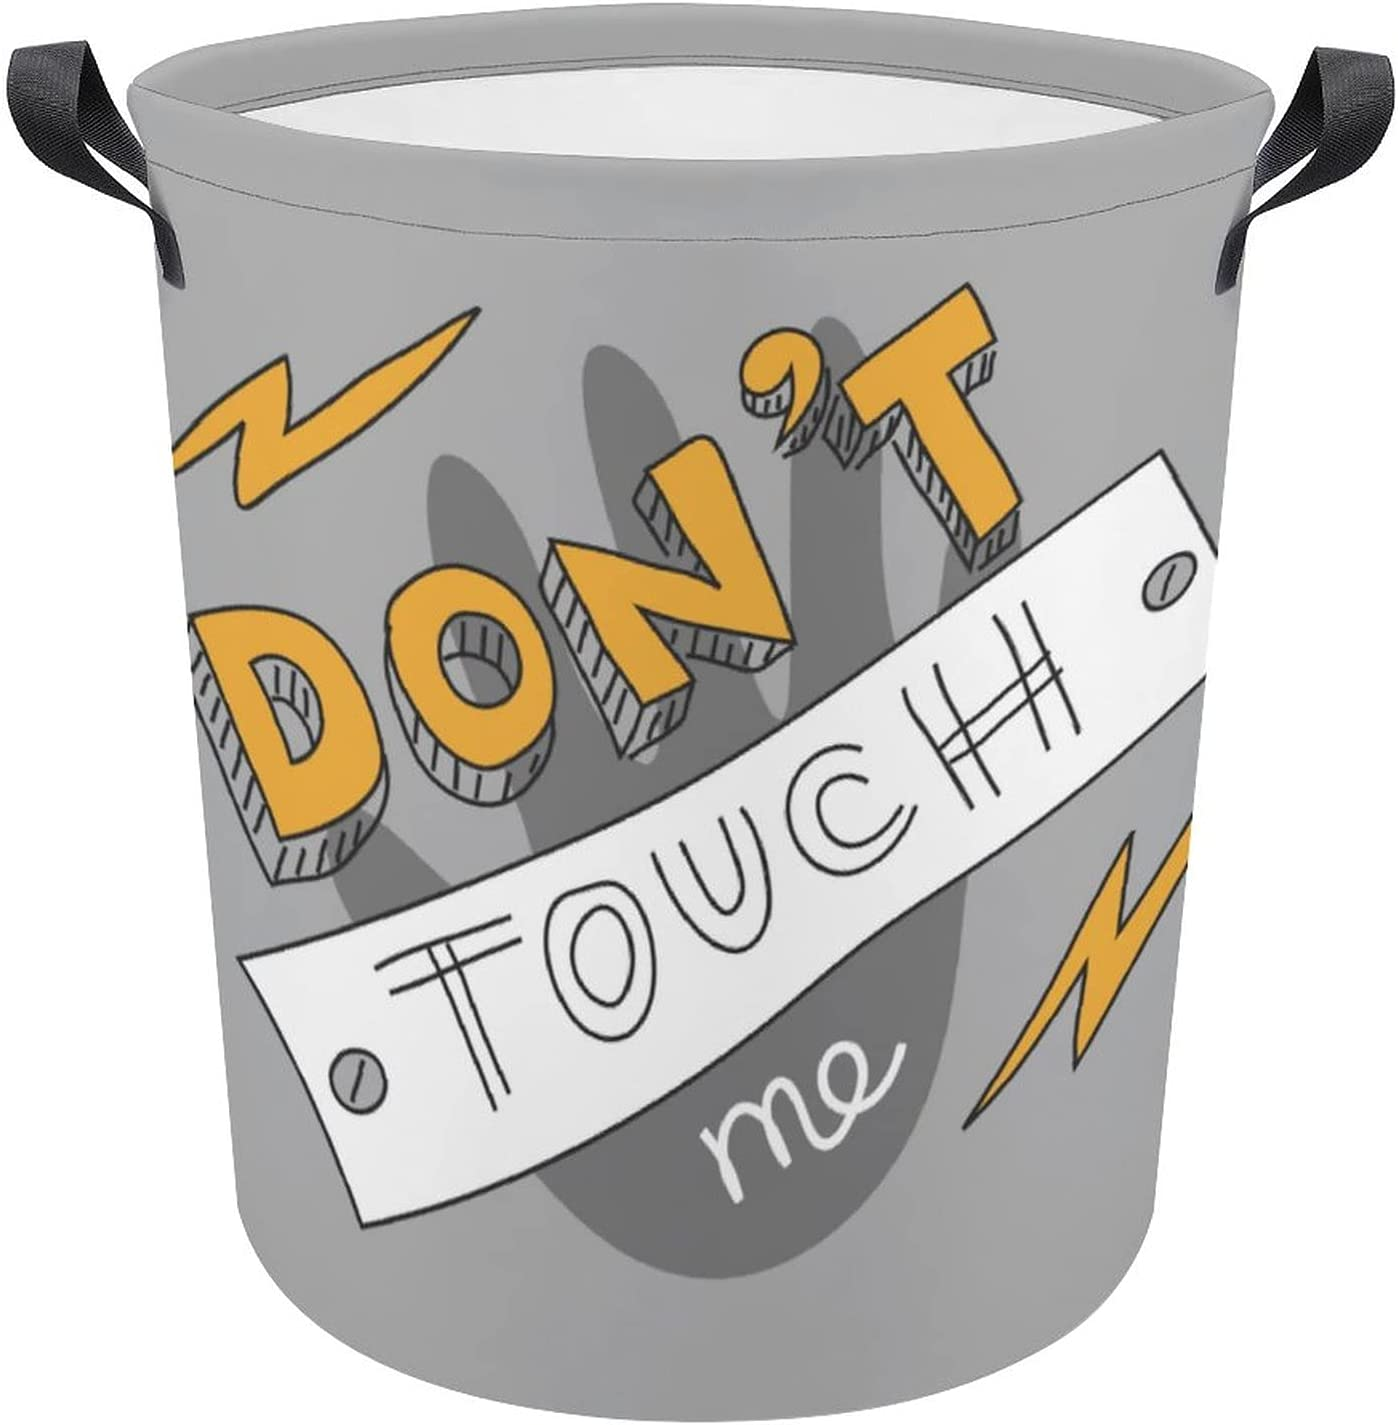 Funny Don't Touch Me Quote Cartoon Laundry Hamper Oxford Sale Special Price Gift Dealing full price reduction Po